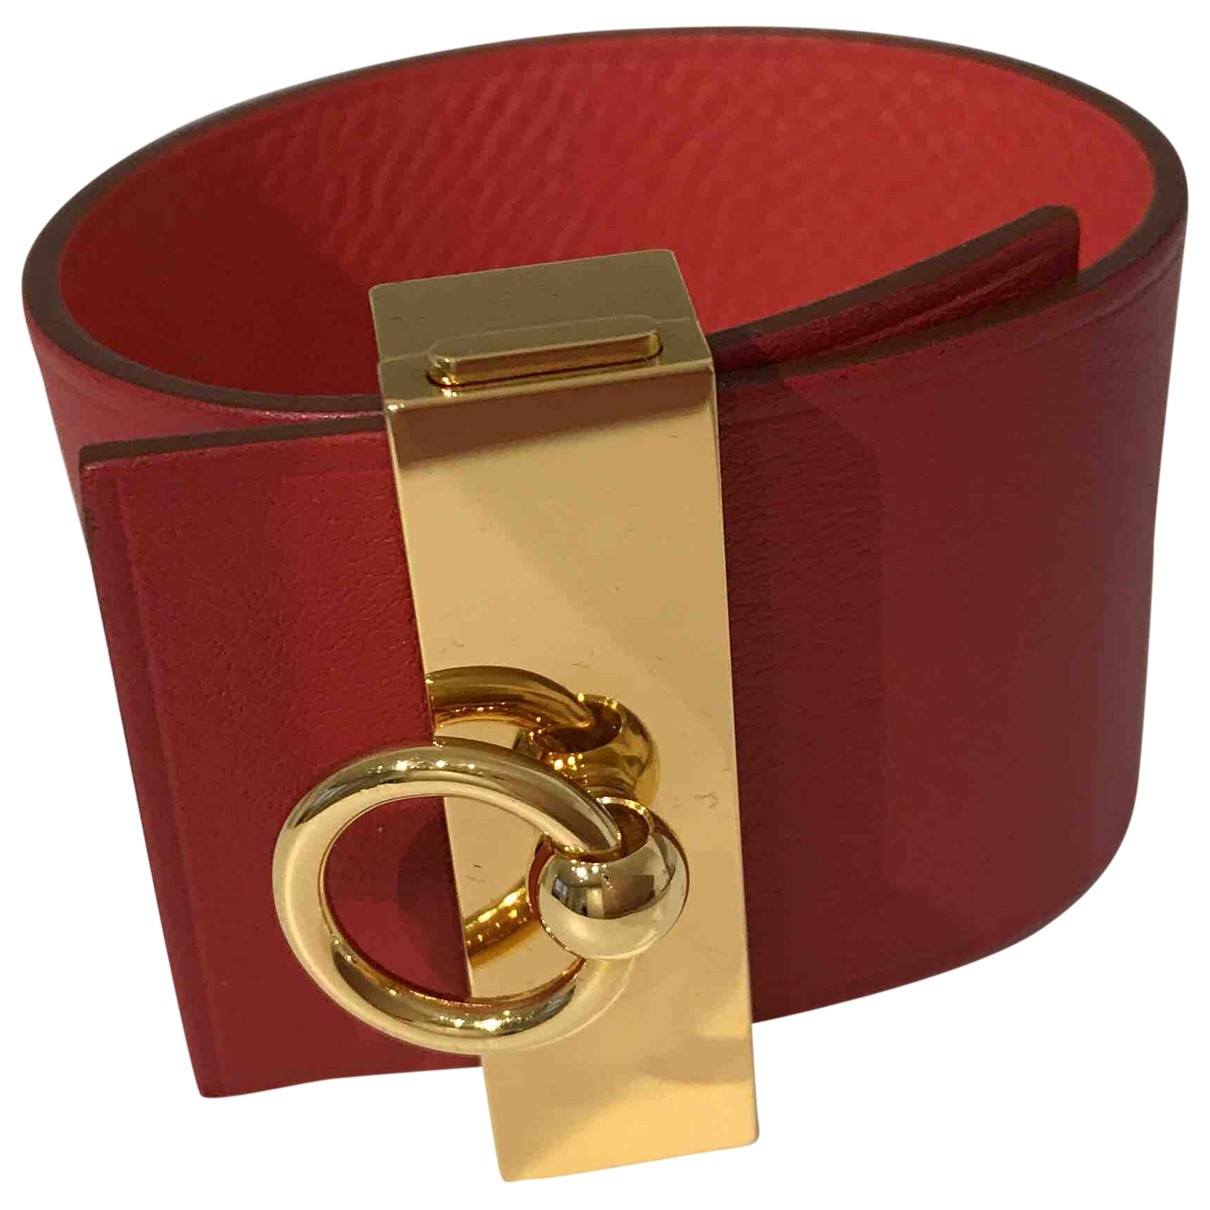 Hermès \N Red Leather bracelet for Women \N